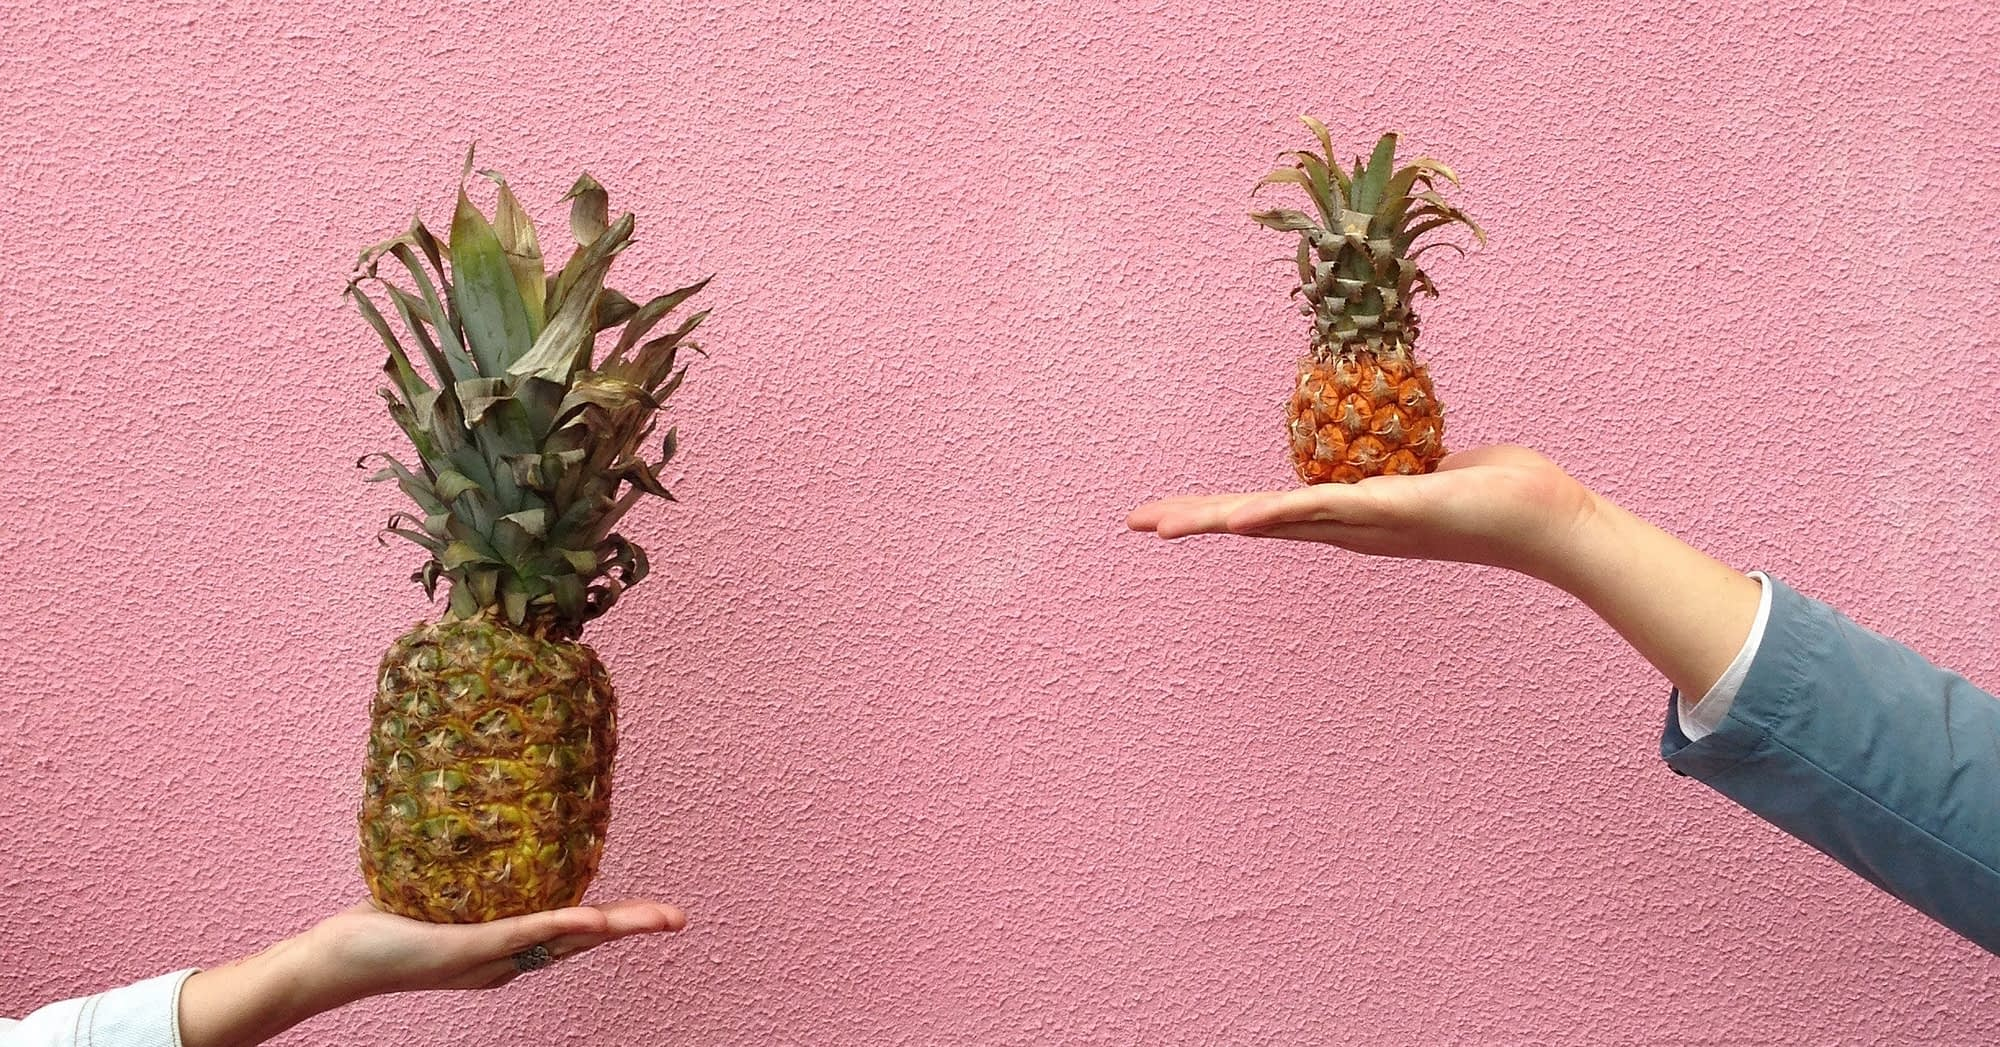 Two people holding fruit for comparison